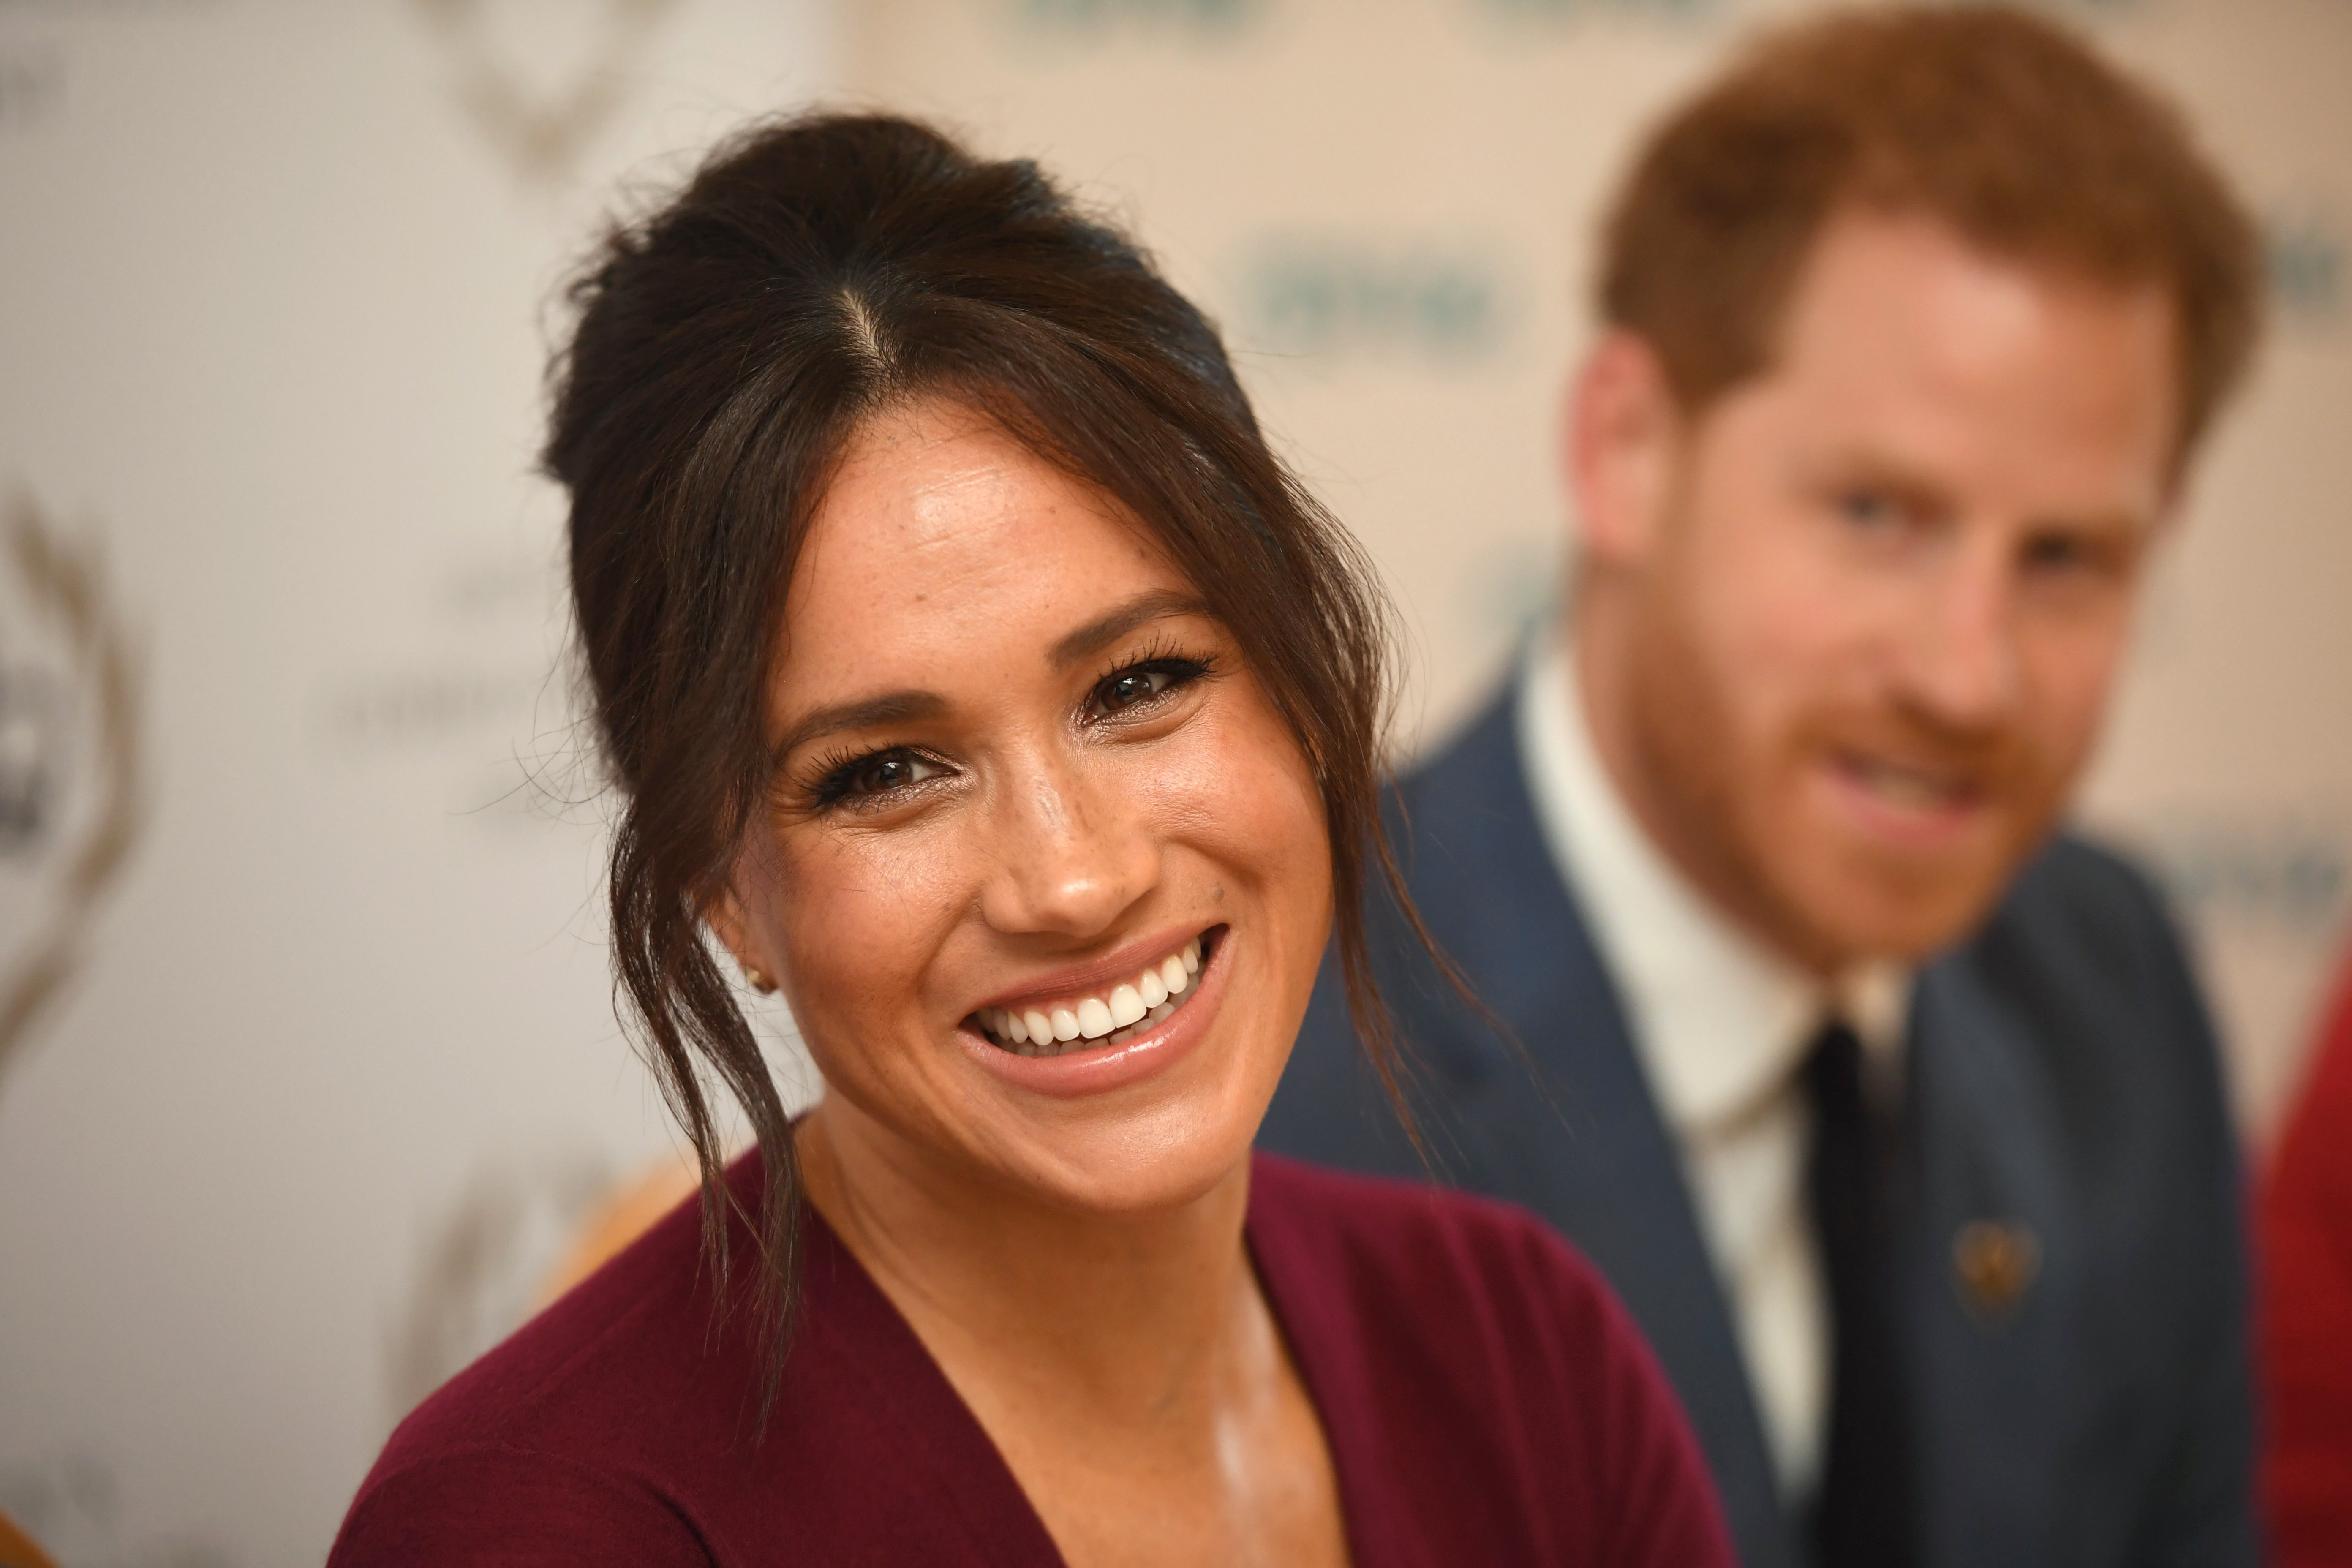 Meghan Markle attends a discussion on gender equality at the Queens Commonwealth Trust in Windsor, England on October 25. 2019 | Photo: Getty Images